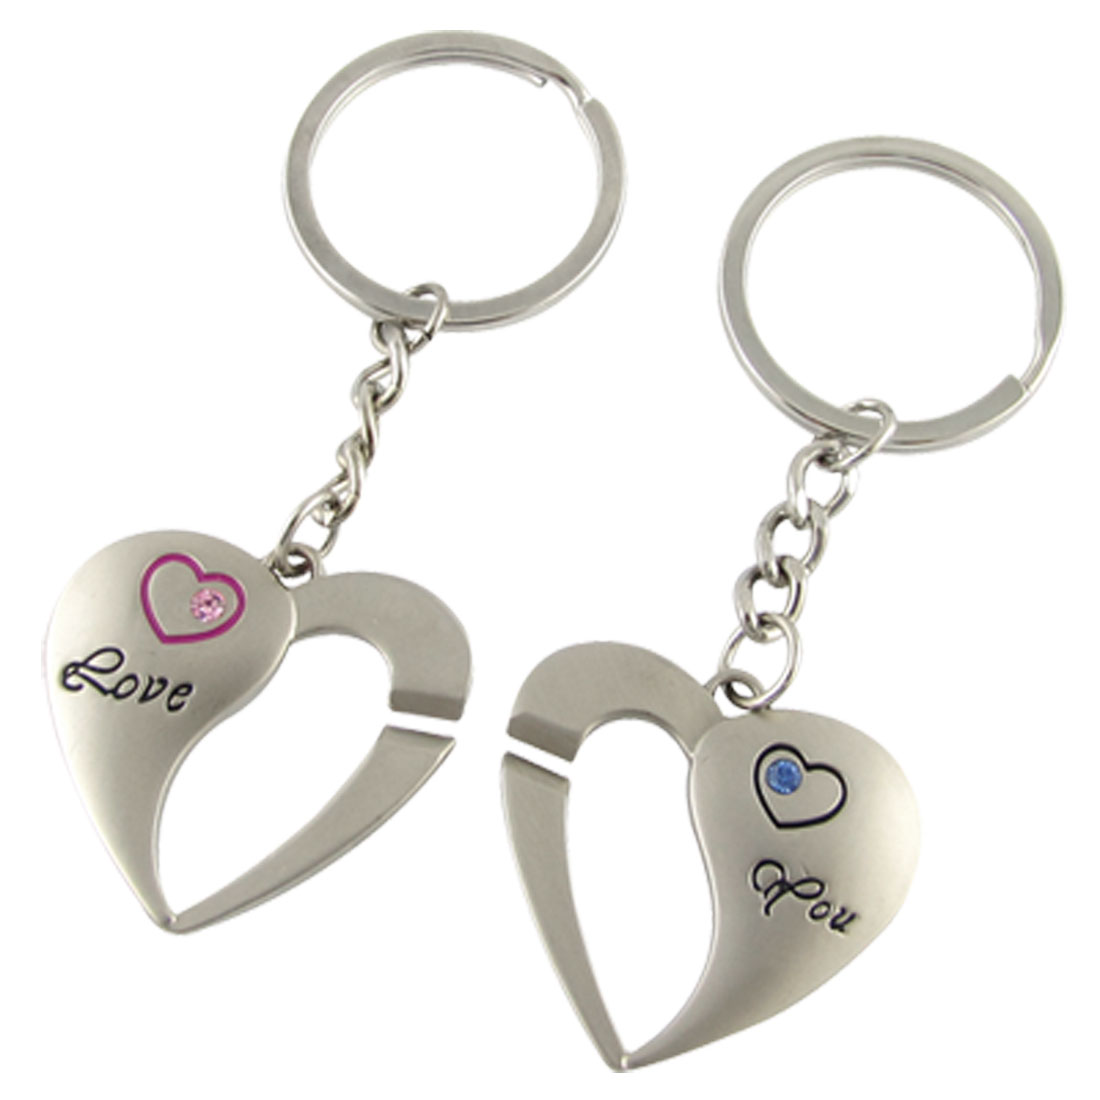 2 Pcs Silver Tone Heart Rhinestone Metal Key Chain Ring for lovers